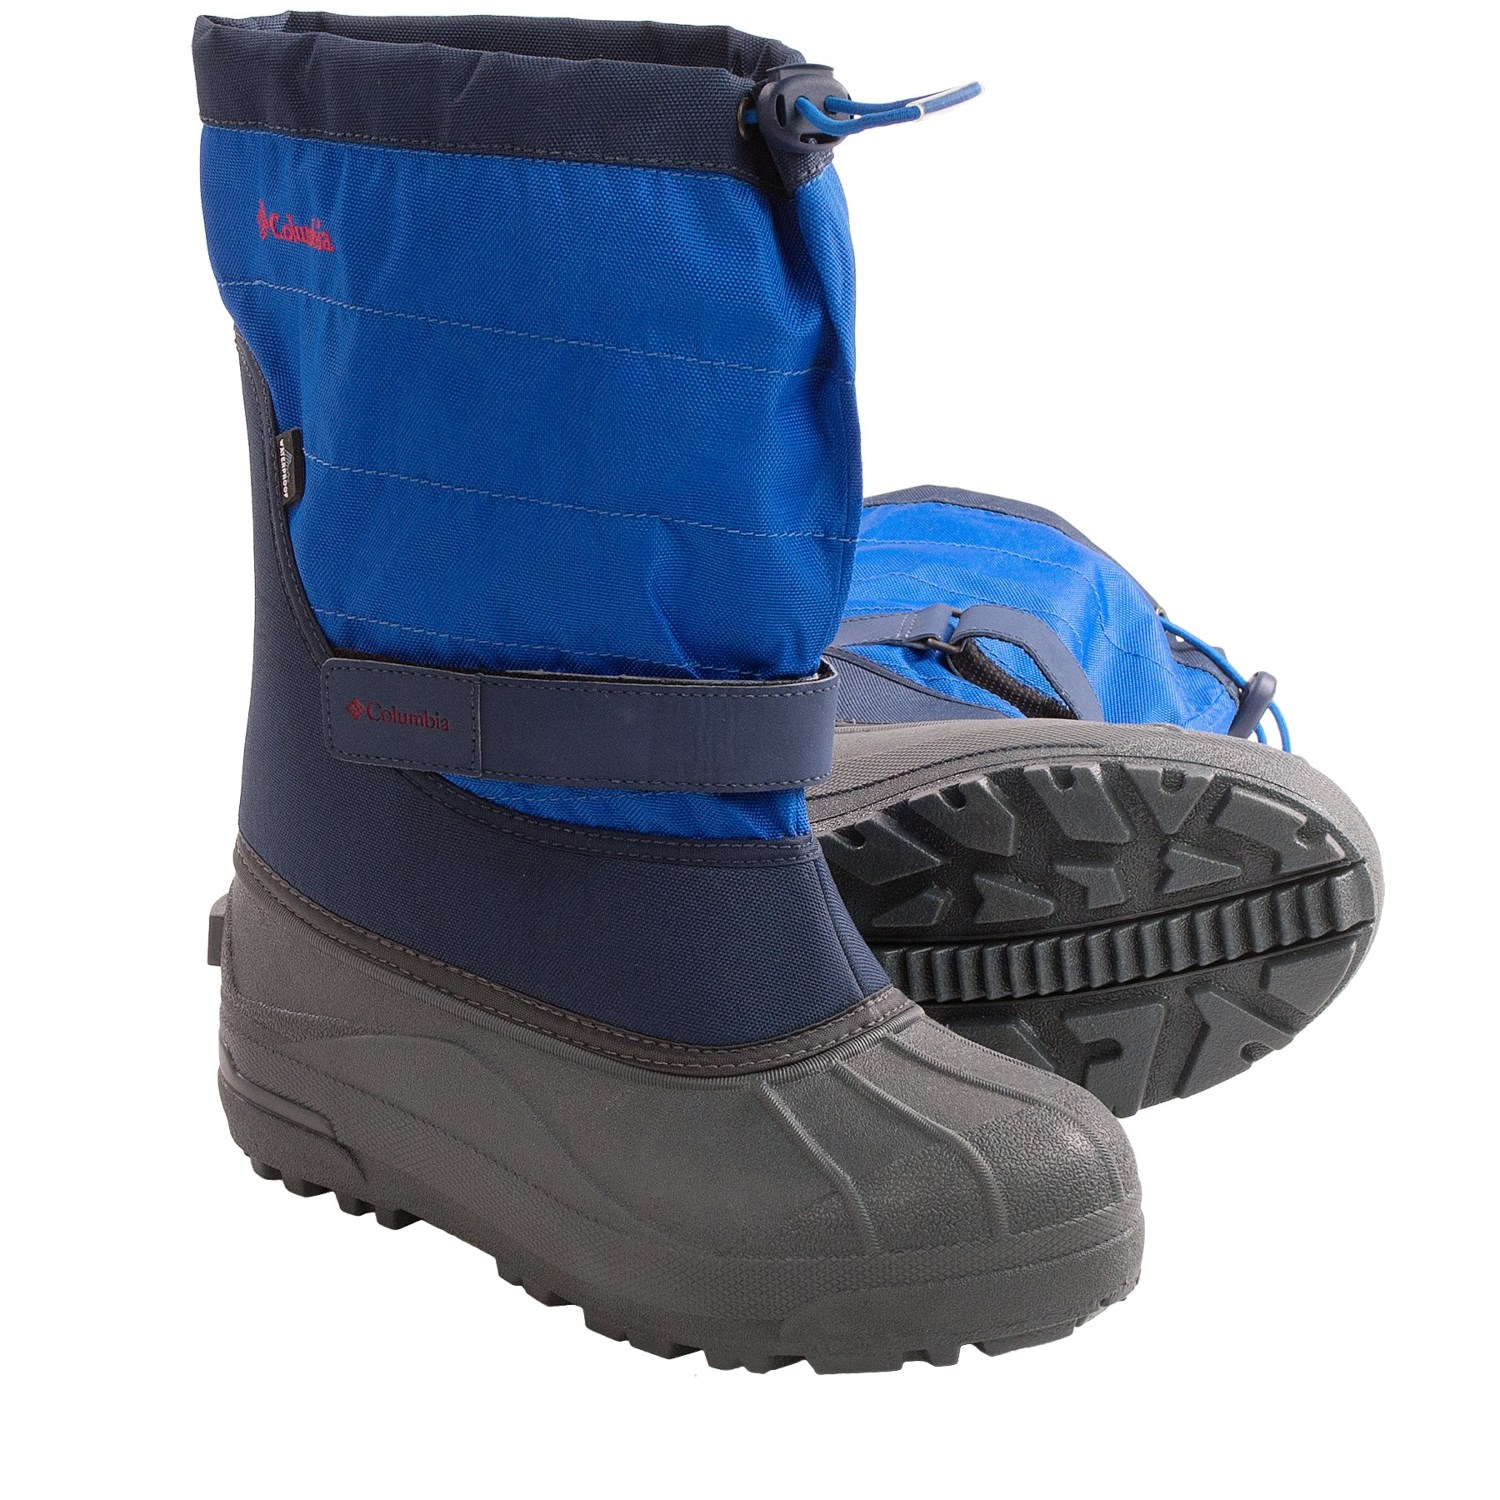 Childrens Waterproof Snow Boots